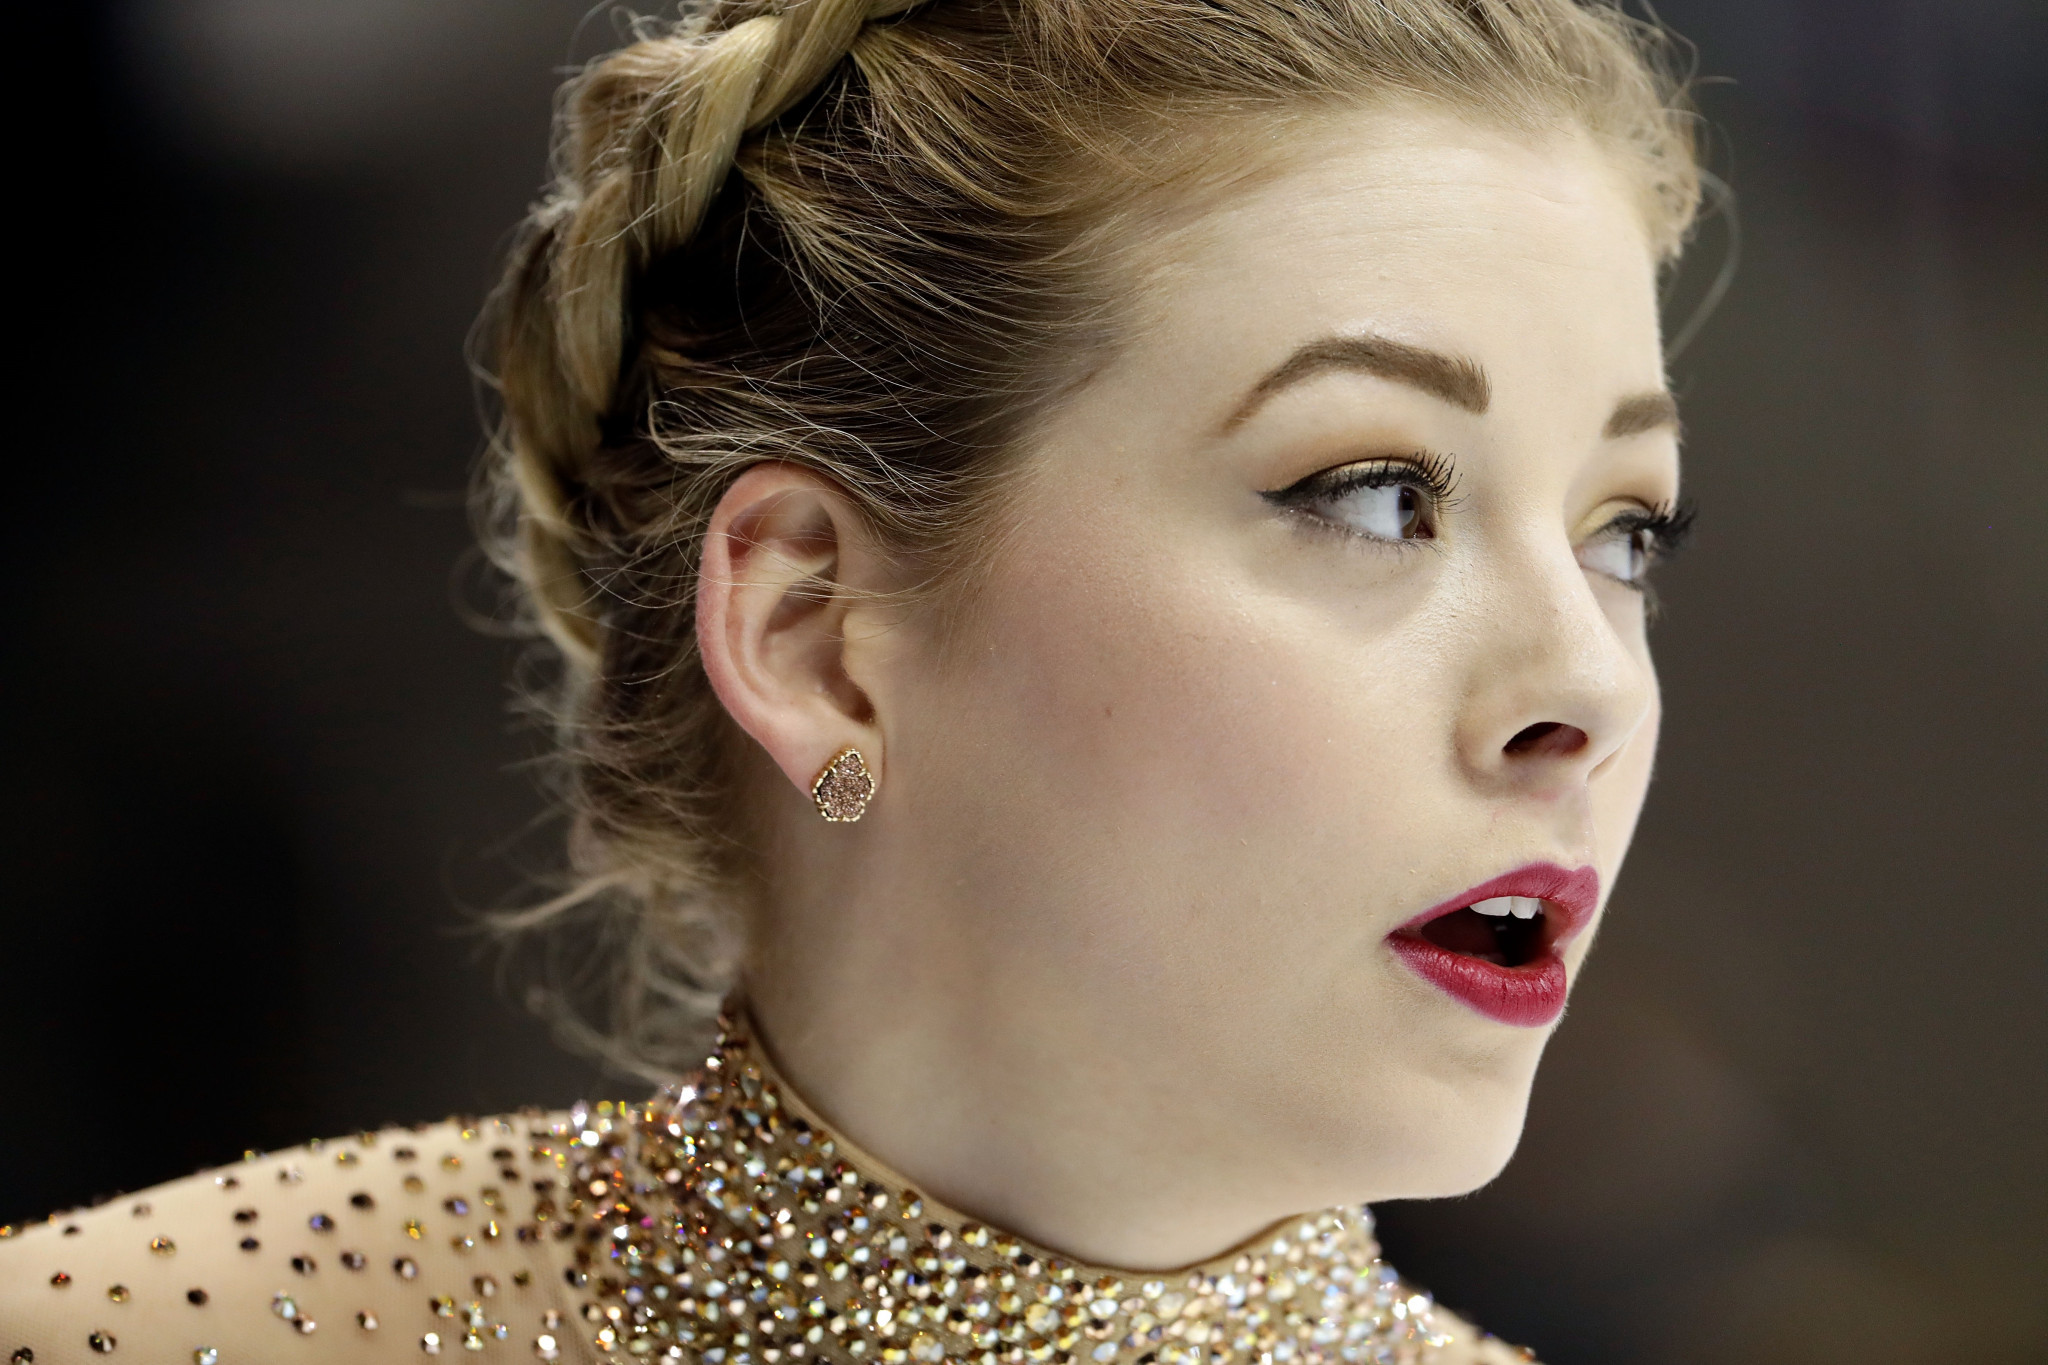 Figure skater Gold's Pyeongchang 2018 hopes end after pulling out of US Championships